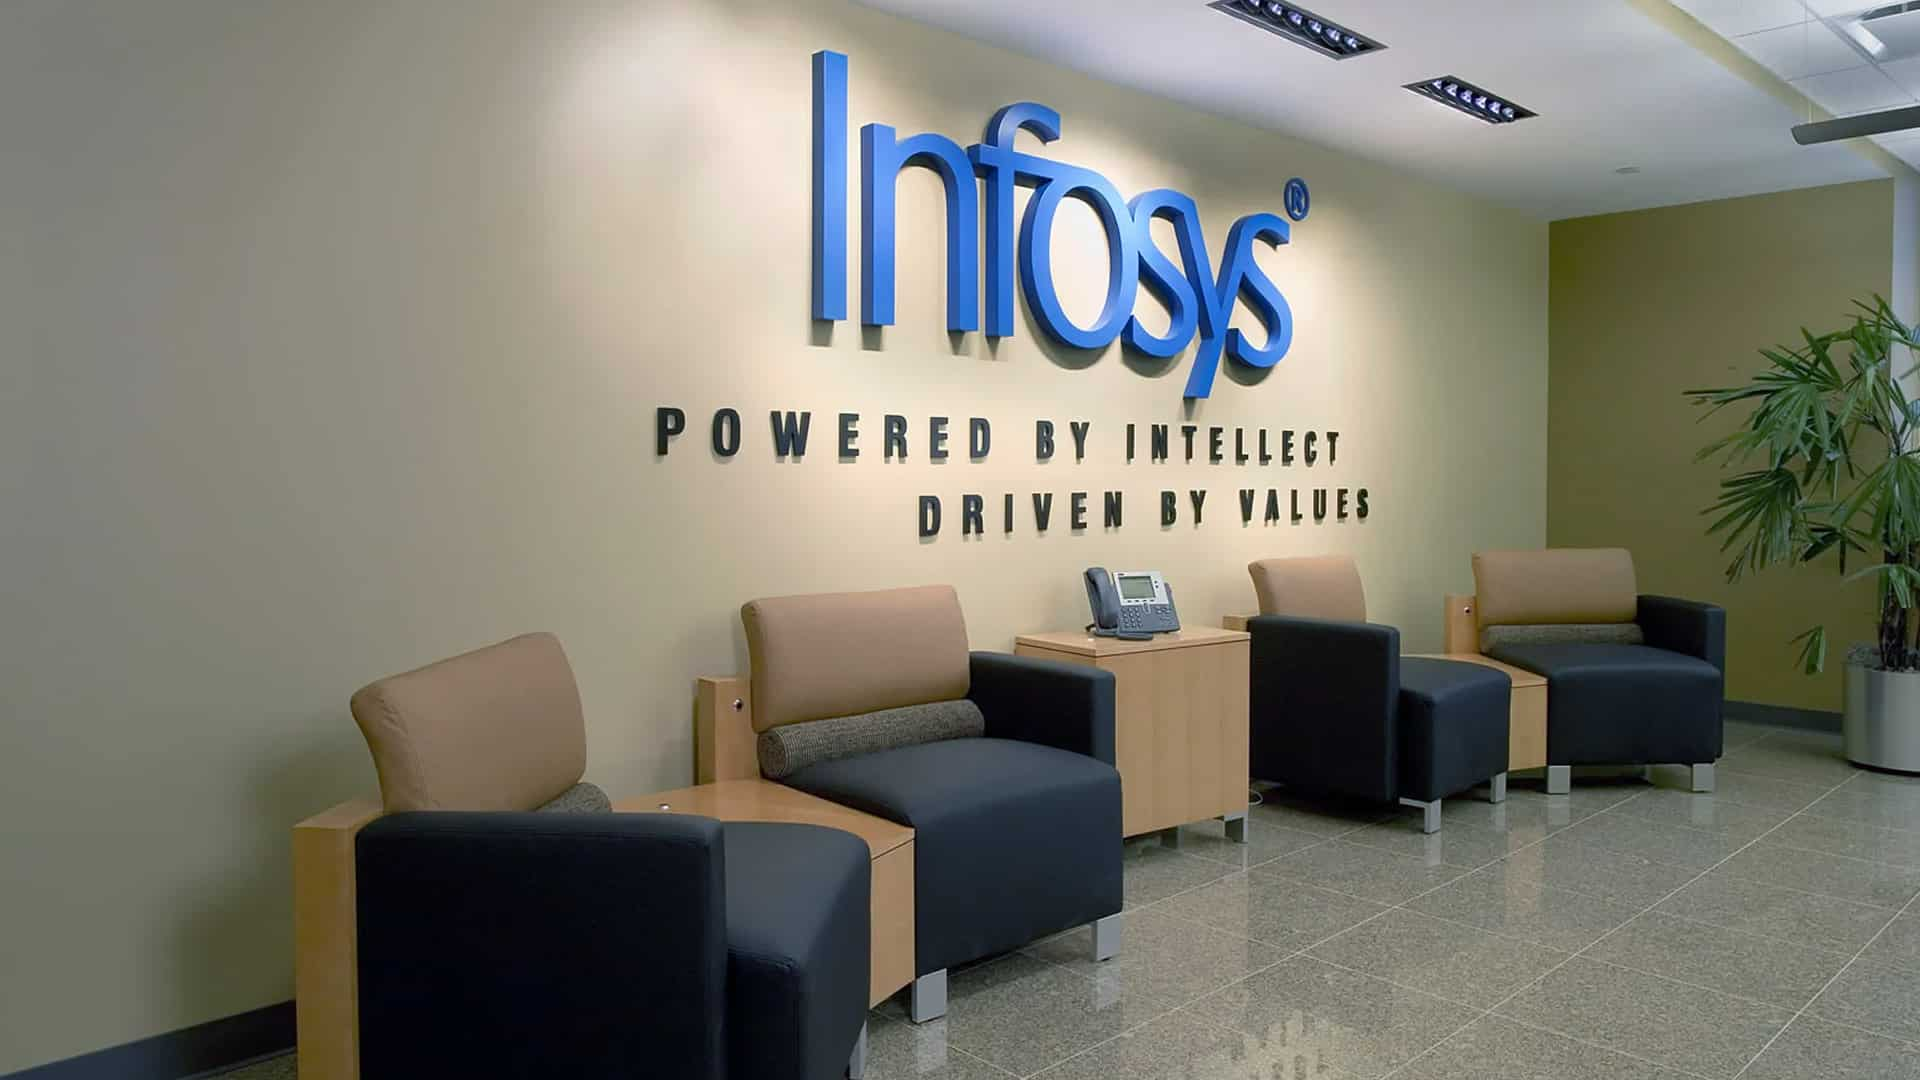 Infosys acknowledged technical issues in I-T portal, initial glitches mitigated: FinMin